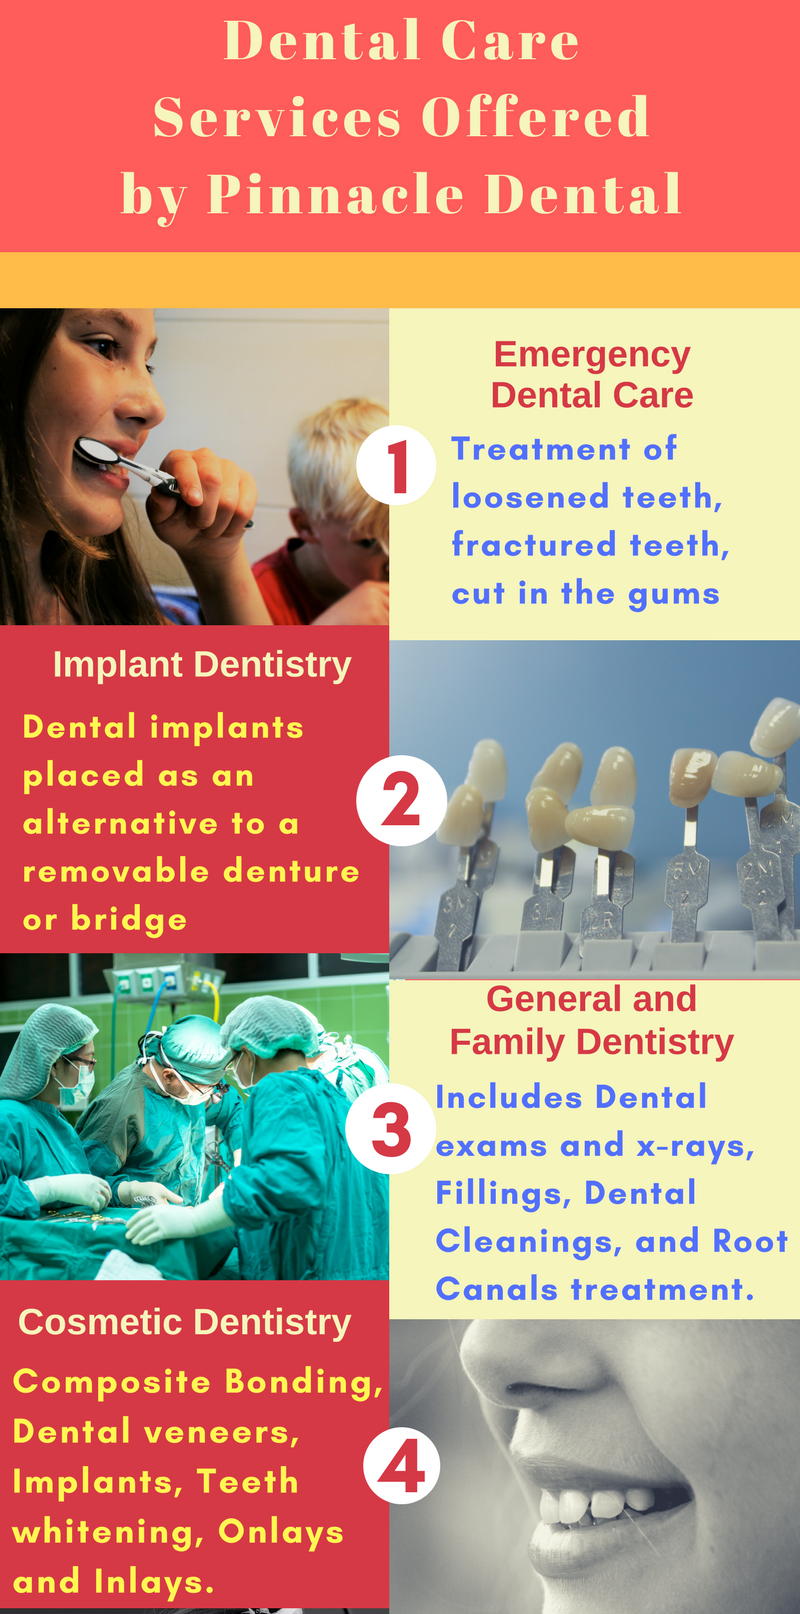 Are you looking for reliable dental services? Hire the